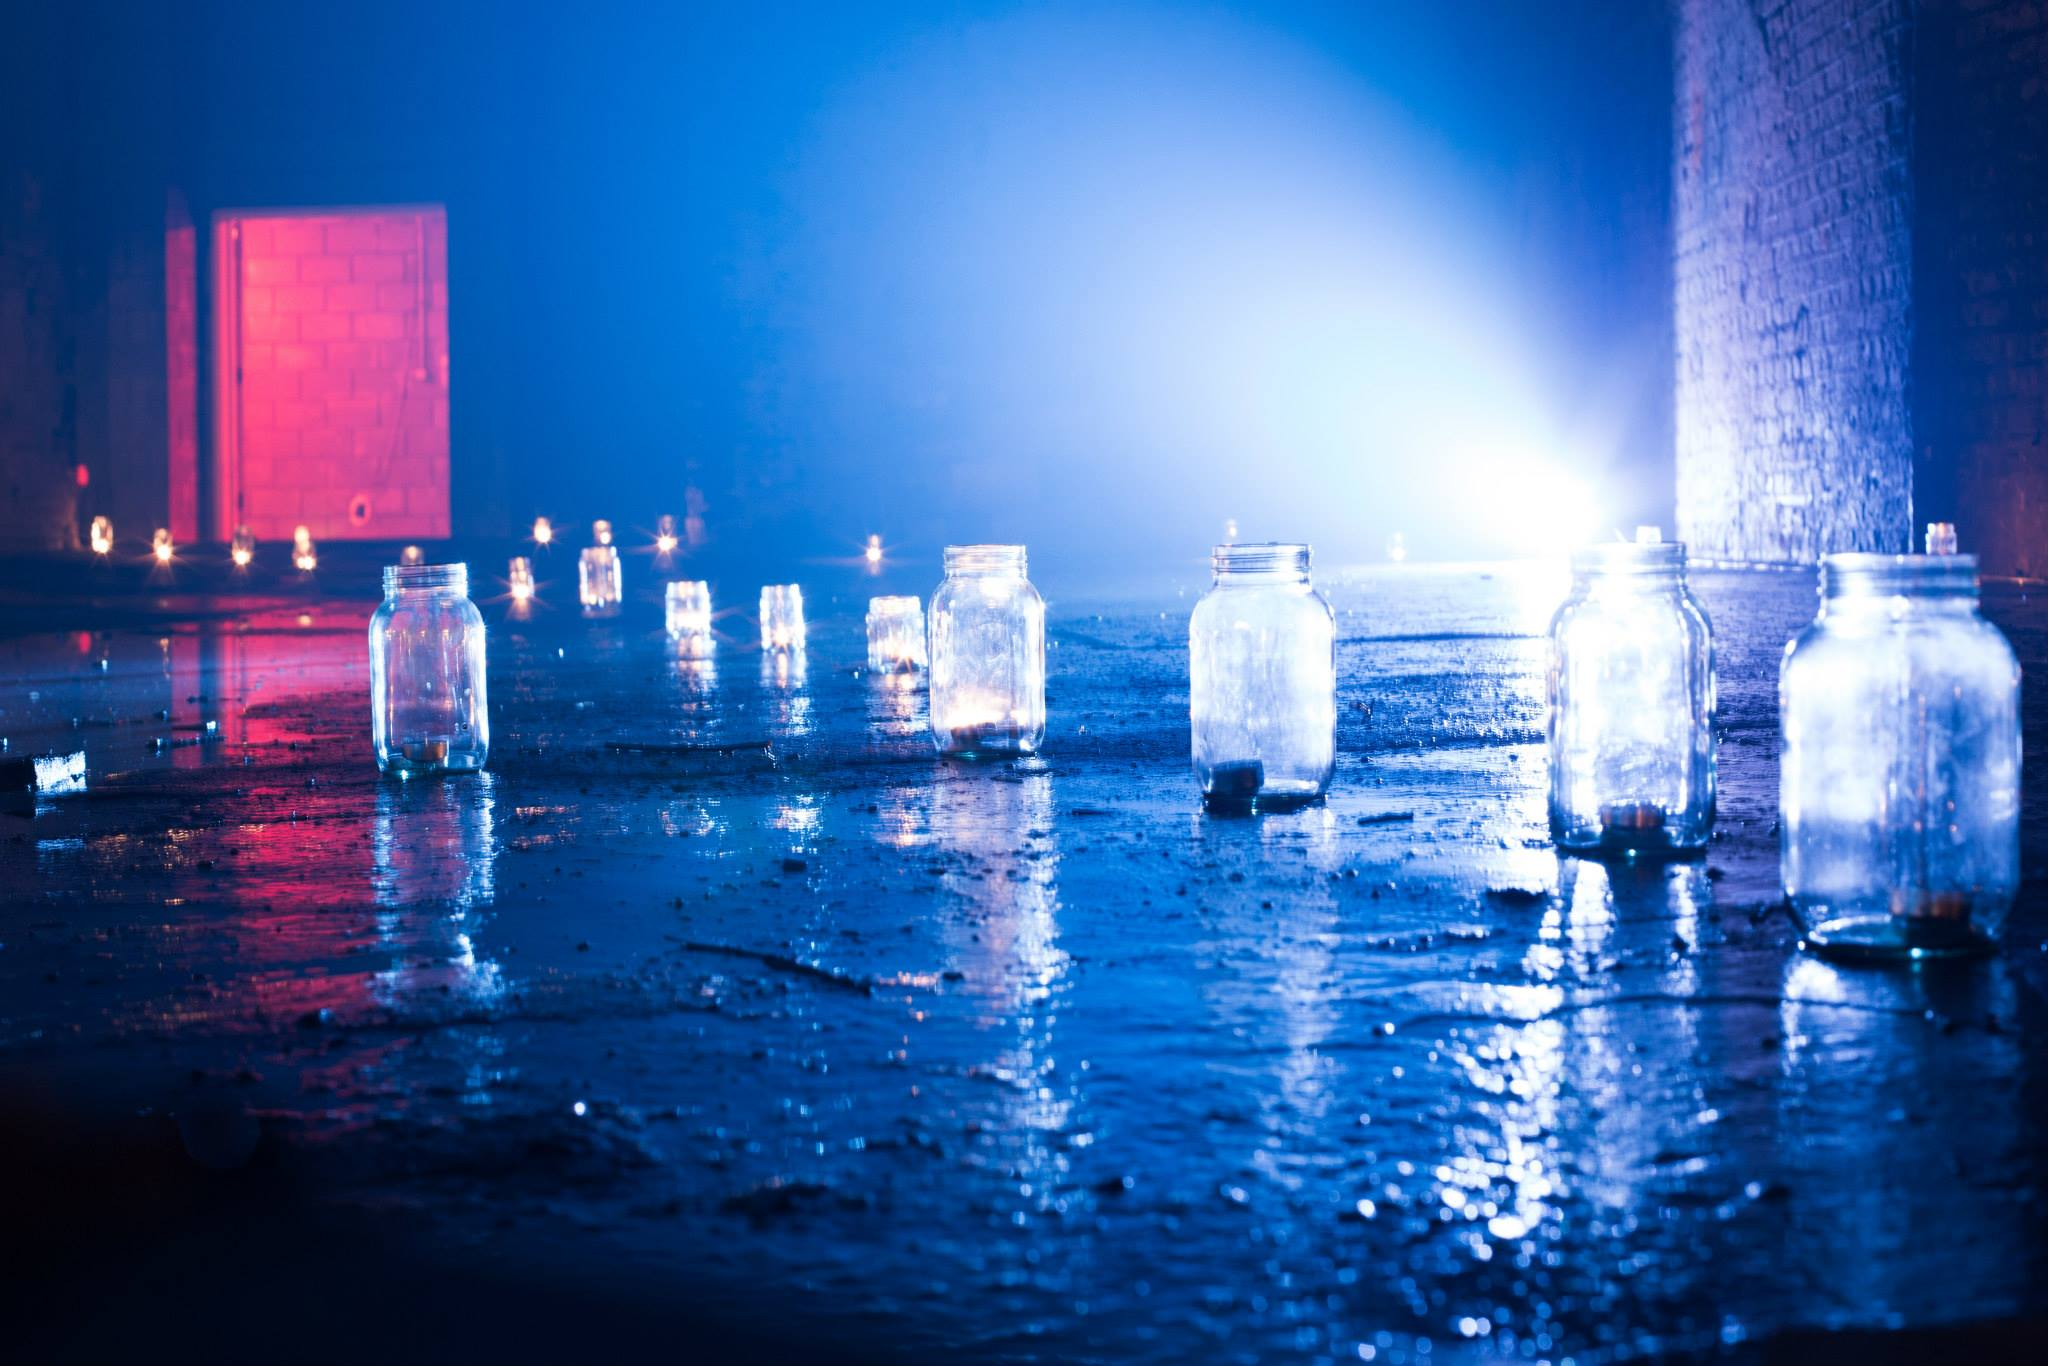 'He had set out candles as he had done the night before, and they glowed in jam jars around the floor...'